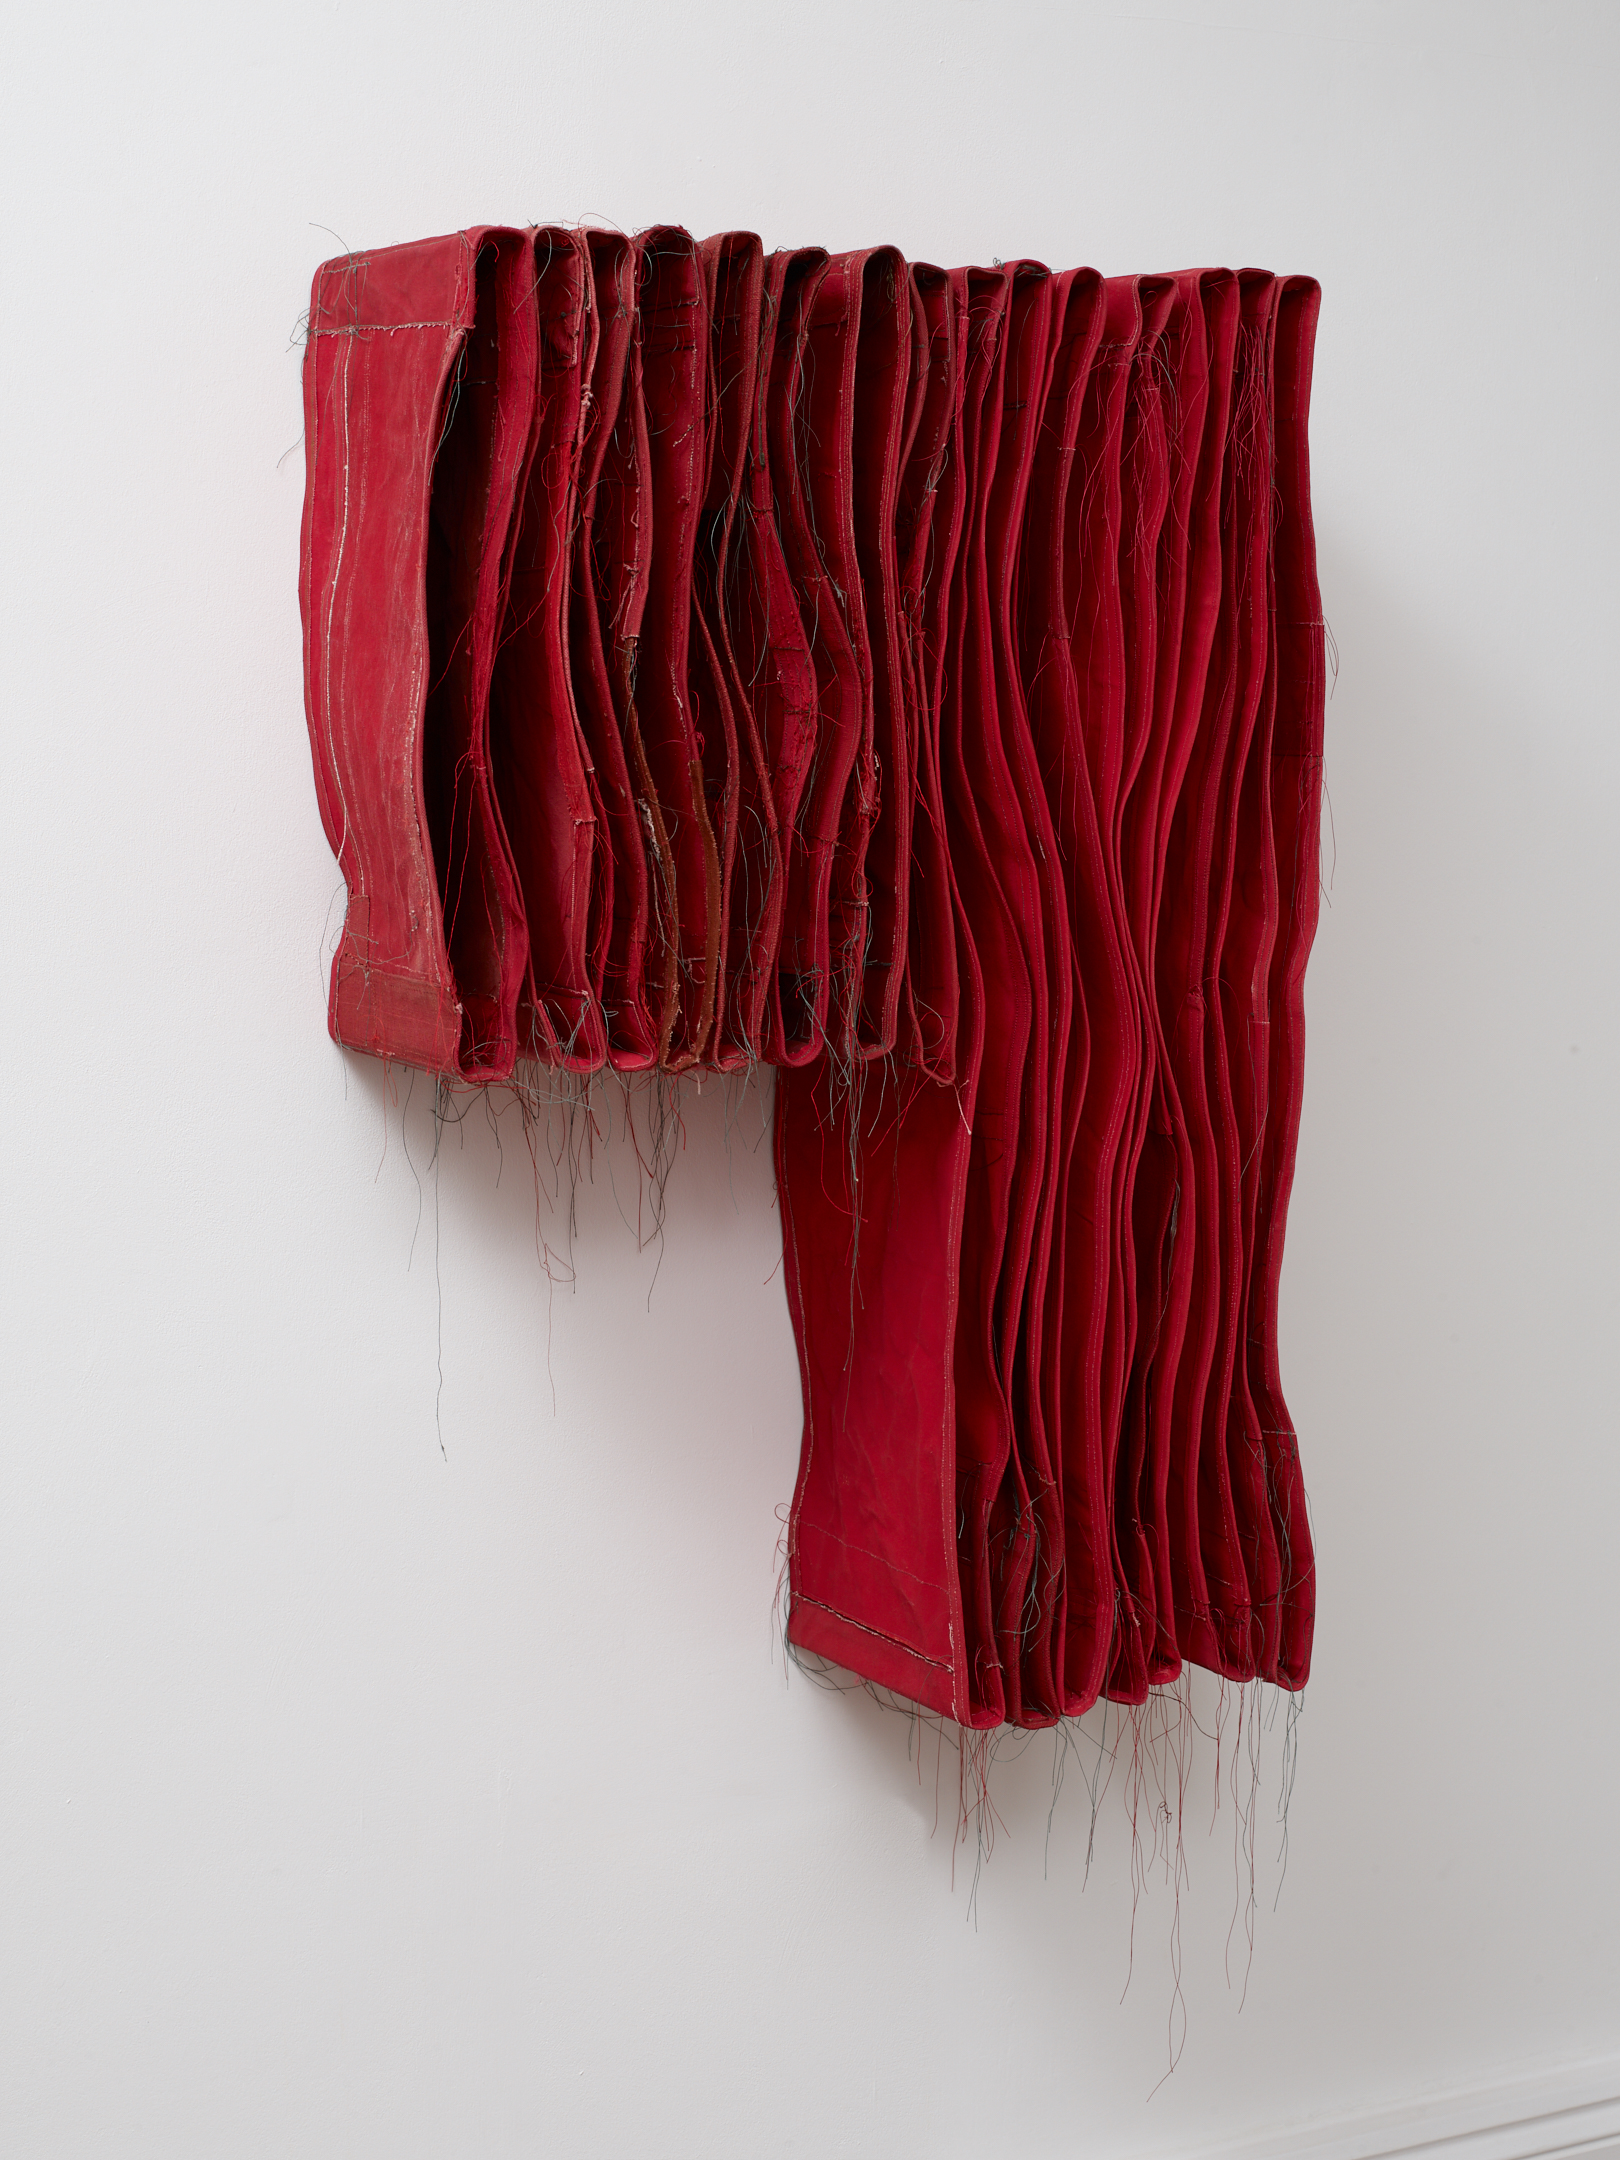 Simon Callery  Punctured Red Wallspine,  2017 Canvas, distemper, thread, pencil and metal brackets 92 x 64 x 26 cm